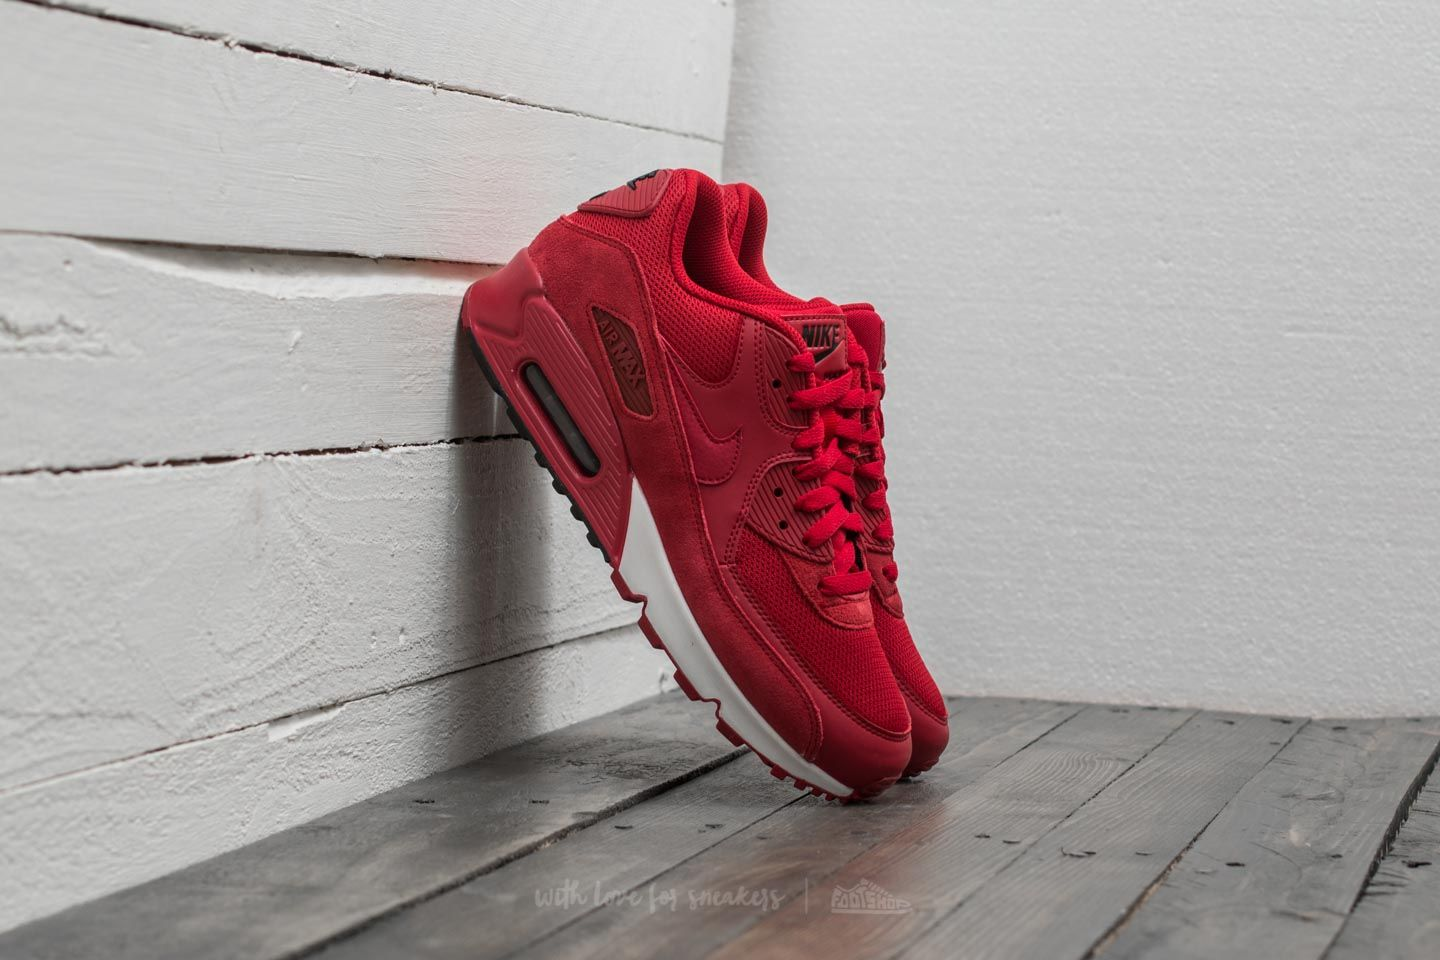 Nike Air Max 1 Leather Premium Men's Shoes Gym RedBlack